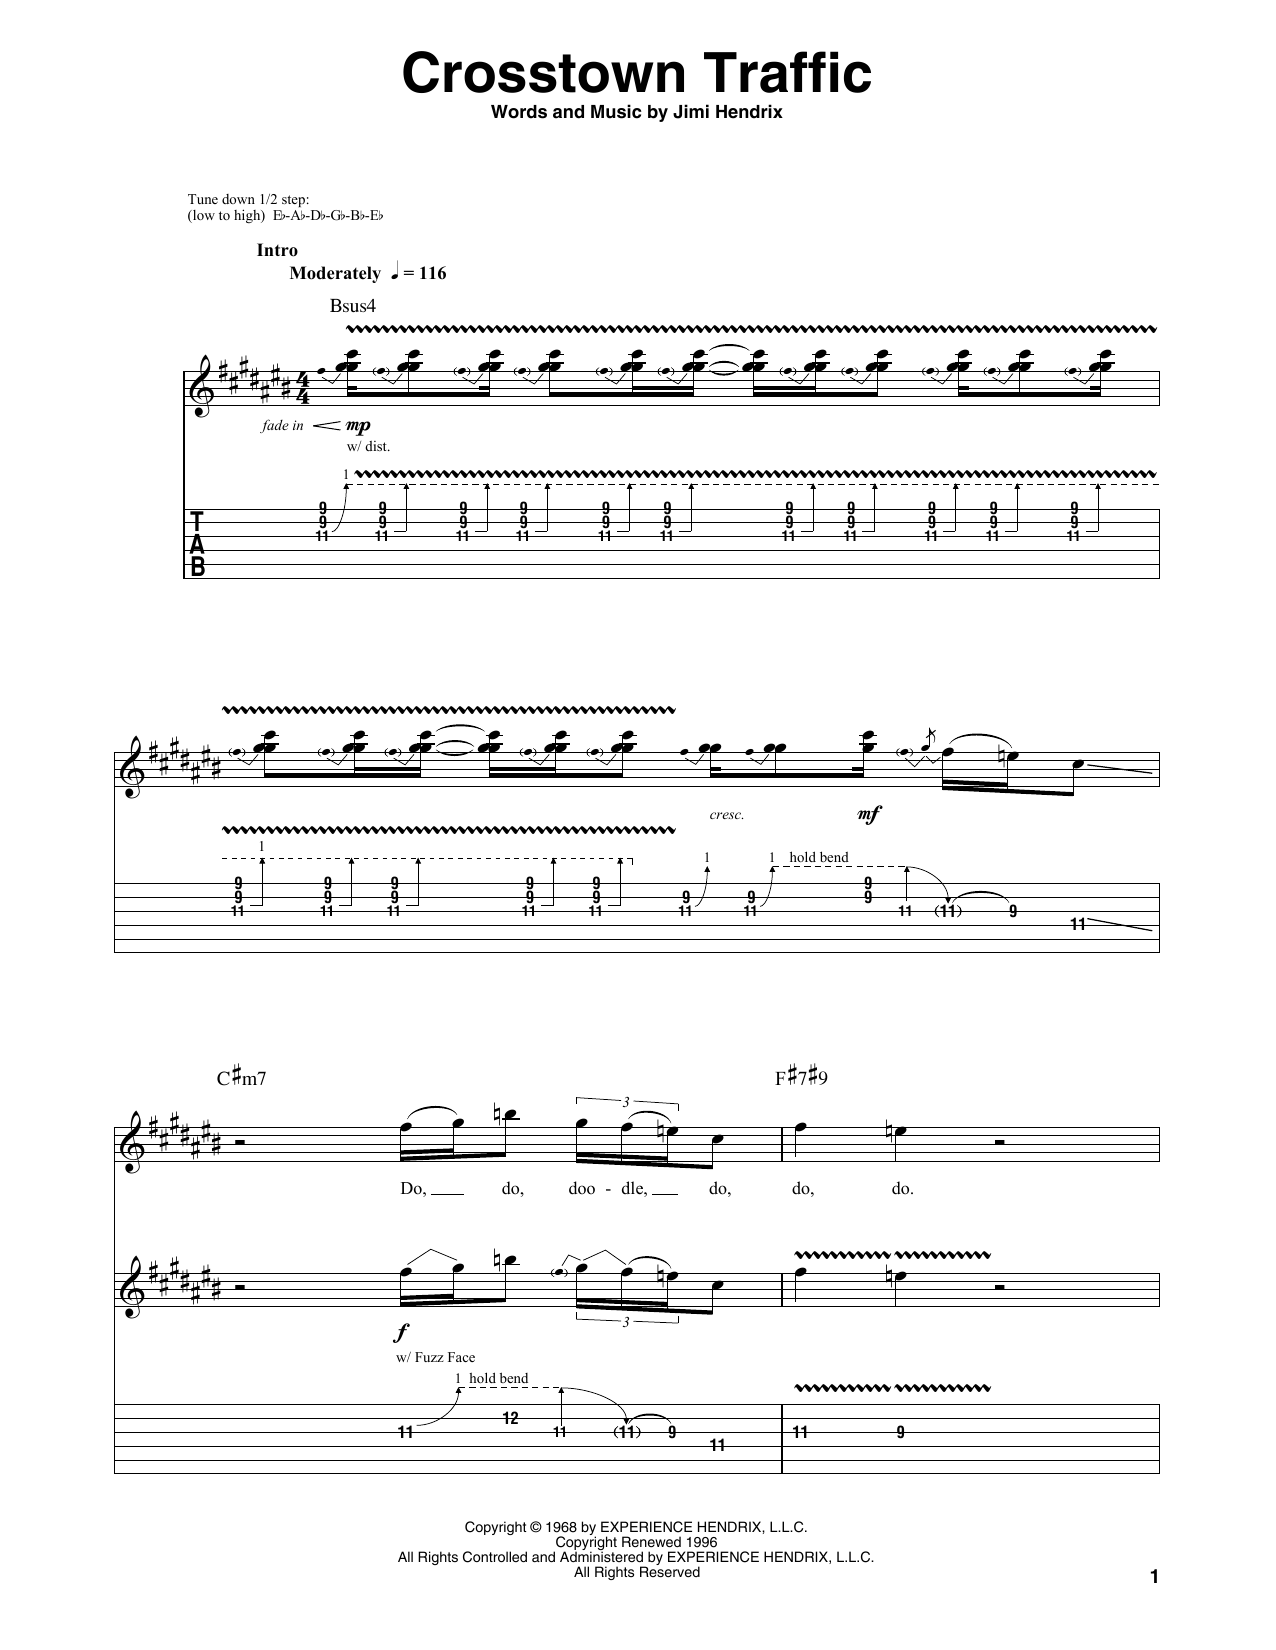 Tablature guitare Crosstown Traffic de Jimi Hendrix - Playback Guitare